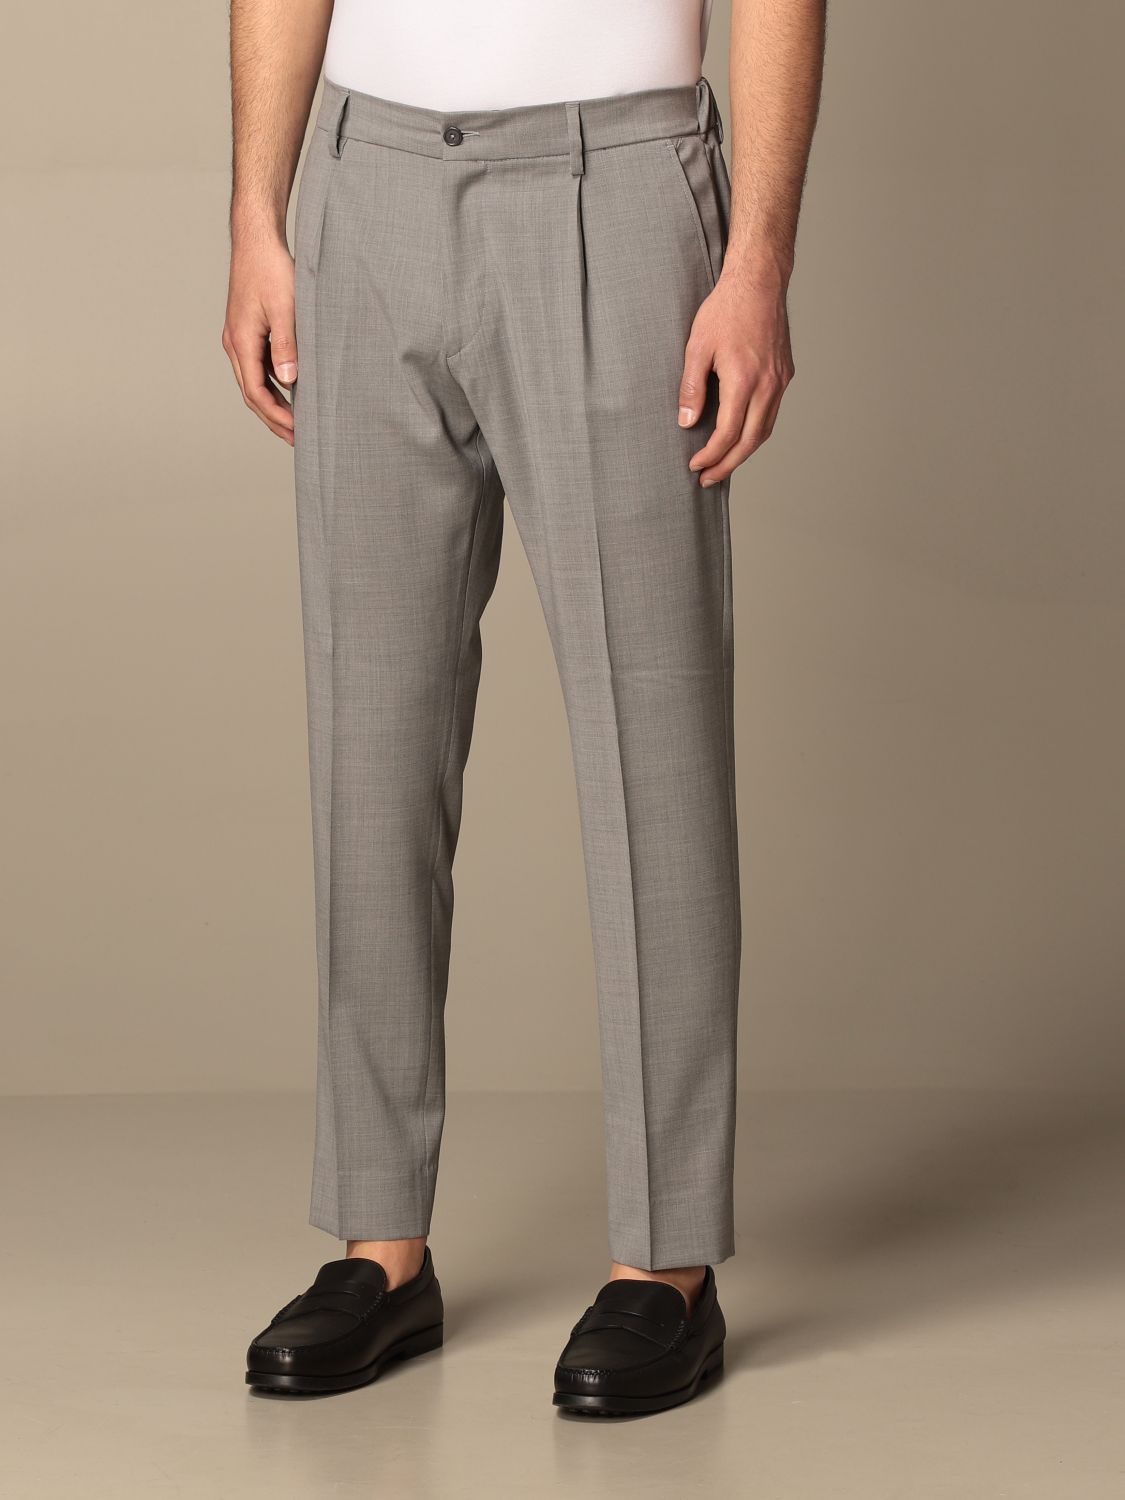 Pants Be Able: Pants men Be Able grey 3